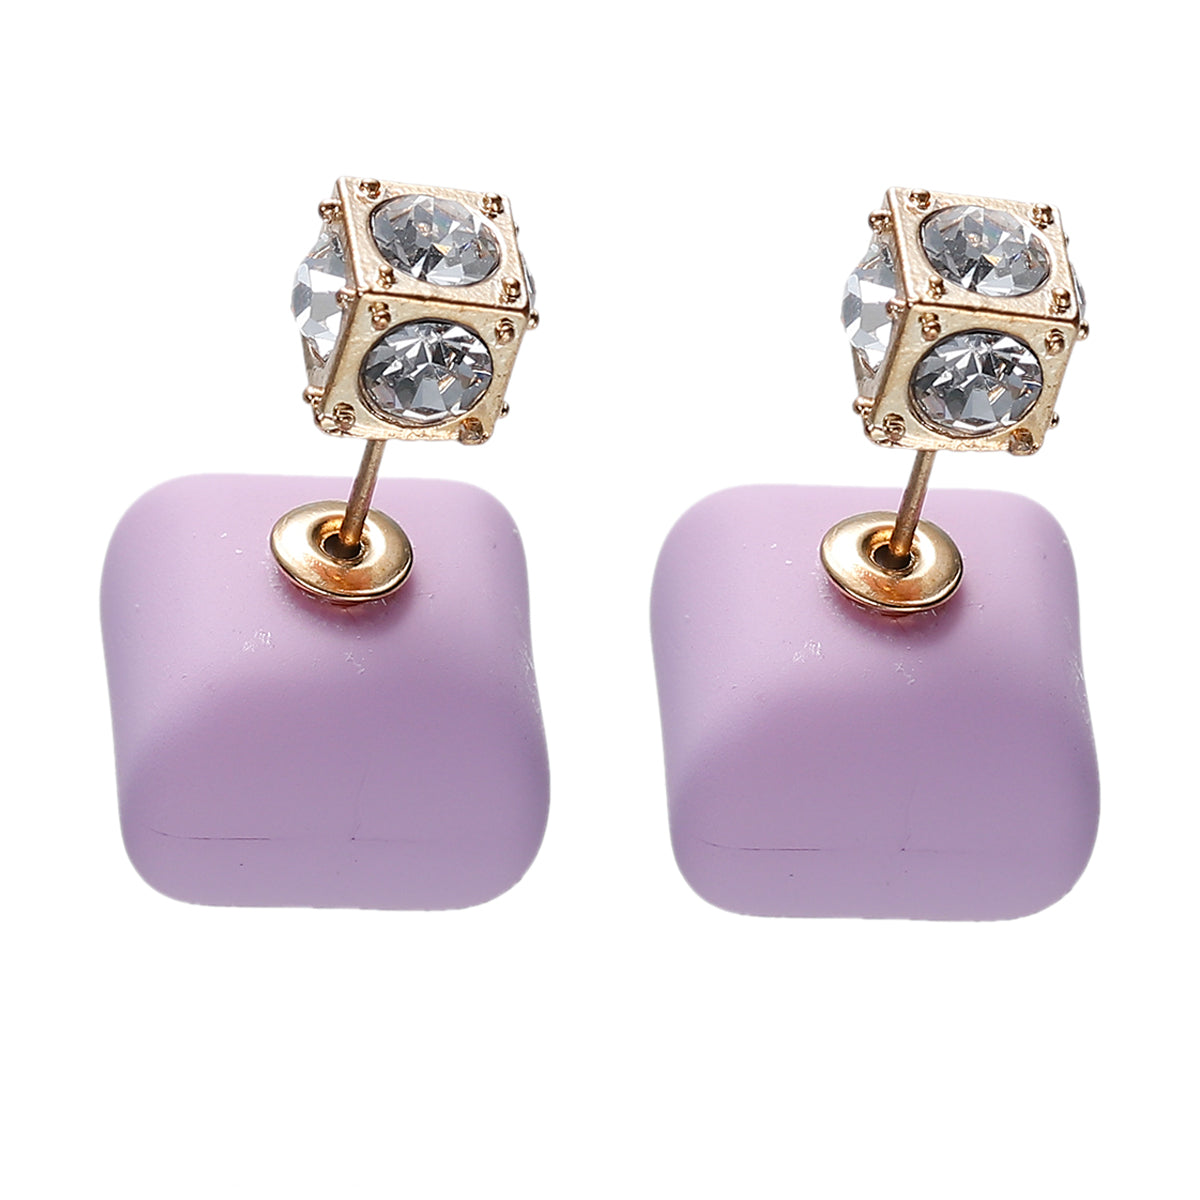 Lavender Royal gold double-sided earrings